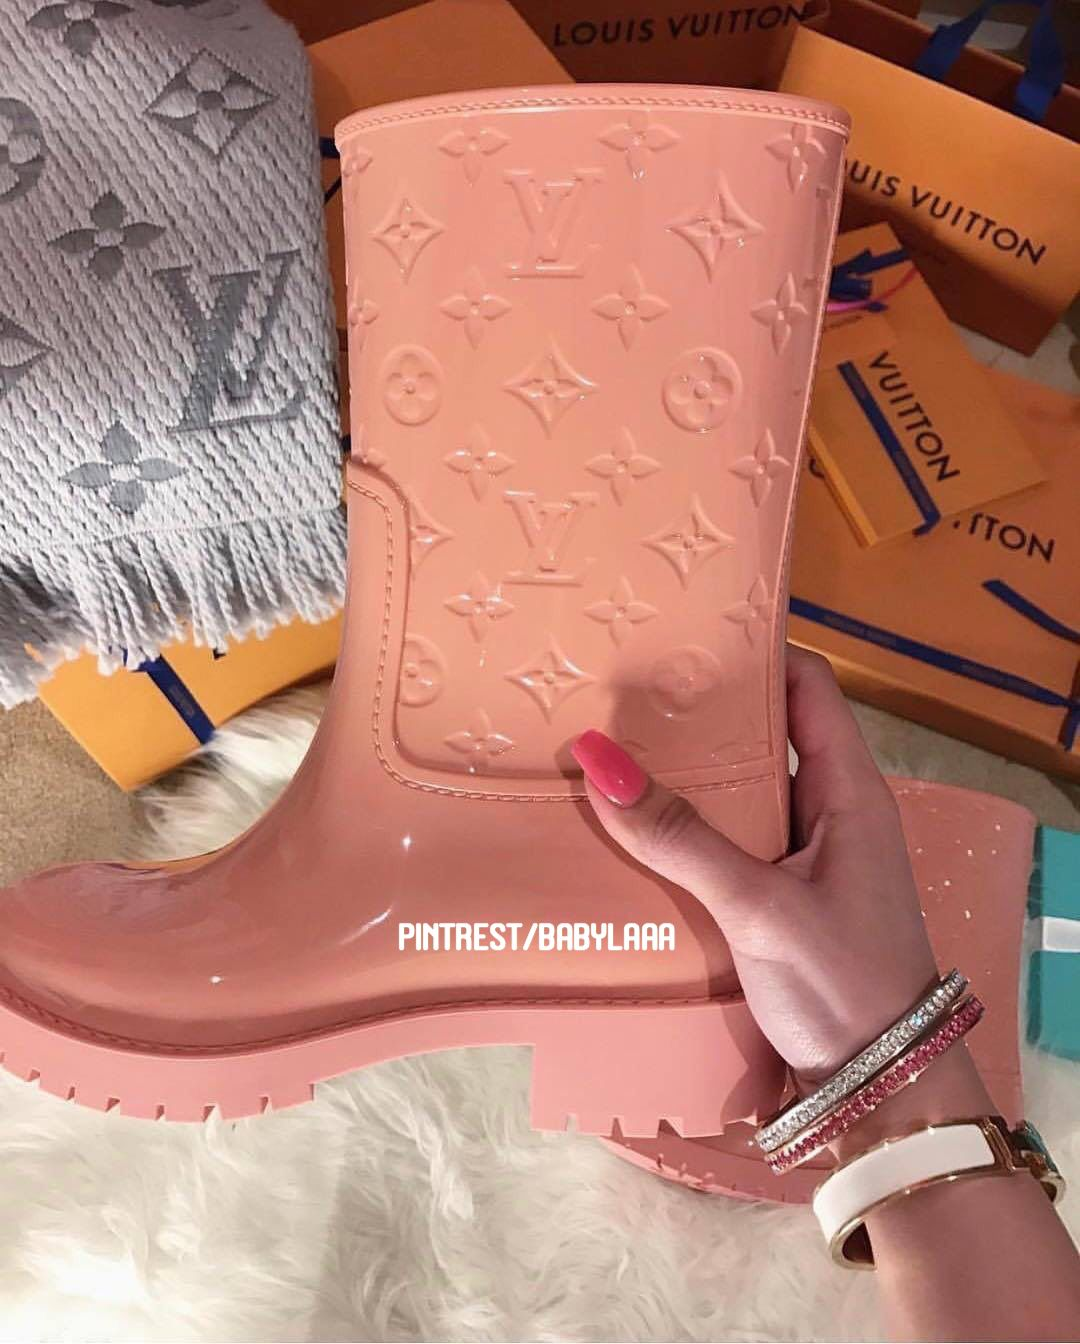 Pin by Lennaaa on WISHLIST in 2019 | Boots, Cute shoes, Shoes